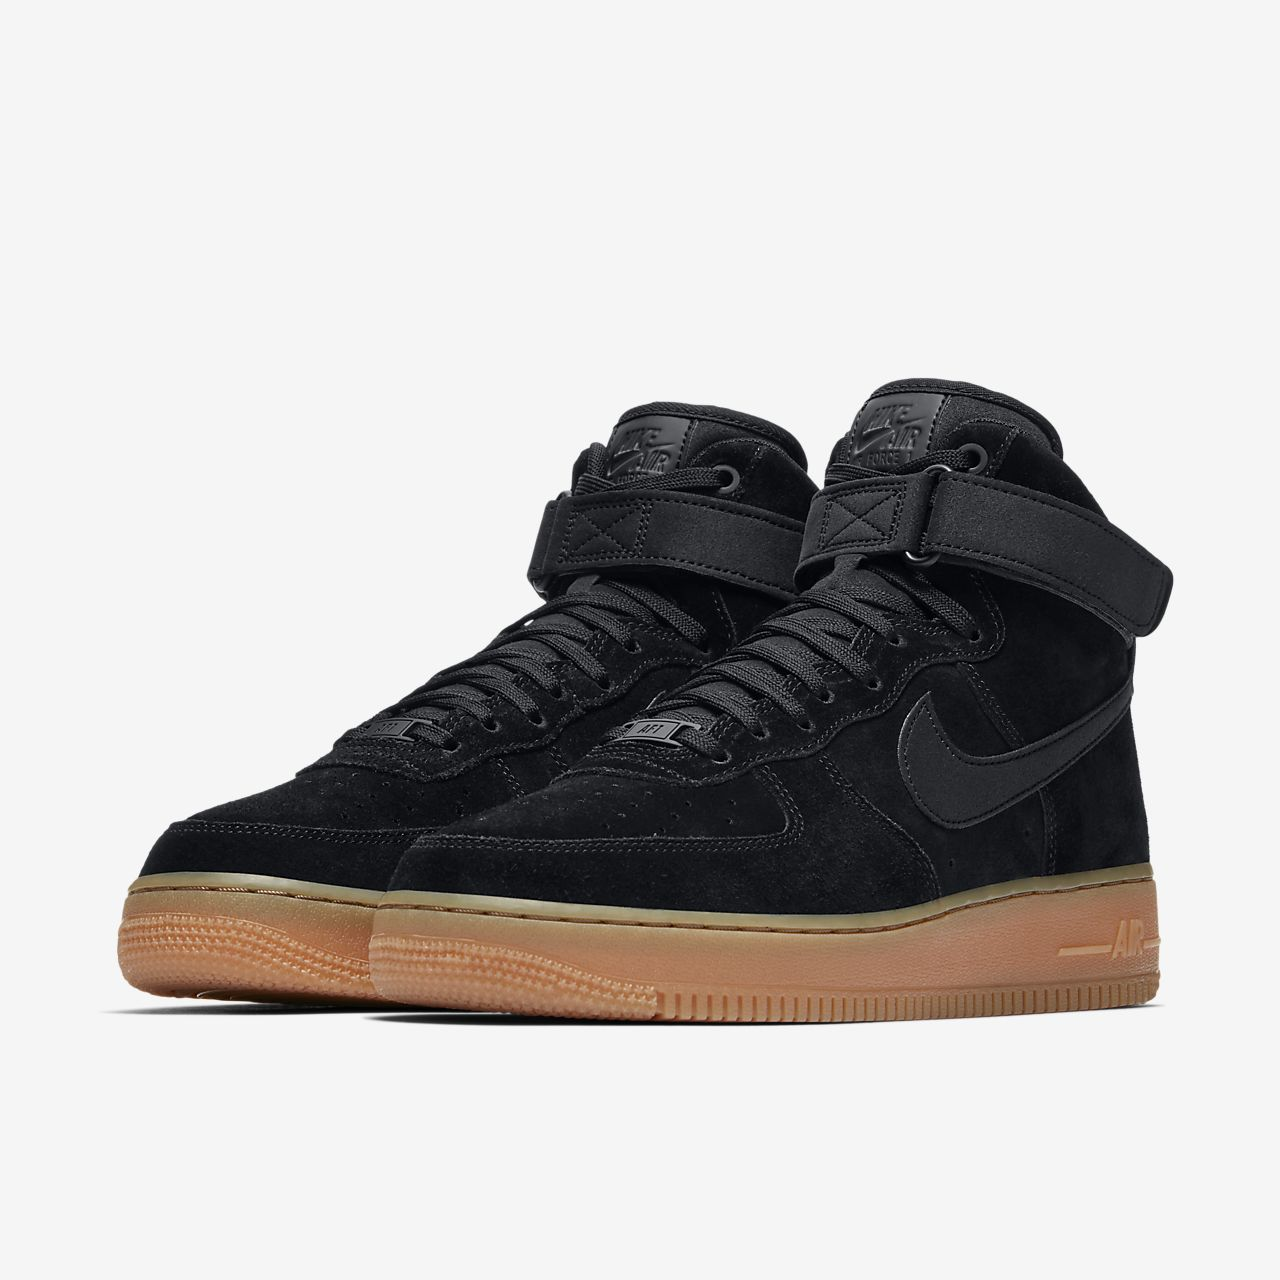 Baskets Nike Air Force 1 '07 Lv8 Suede 1OX82B